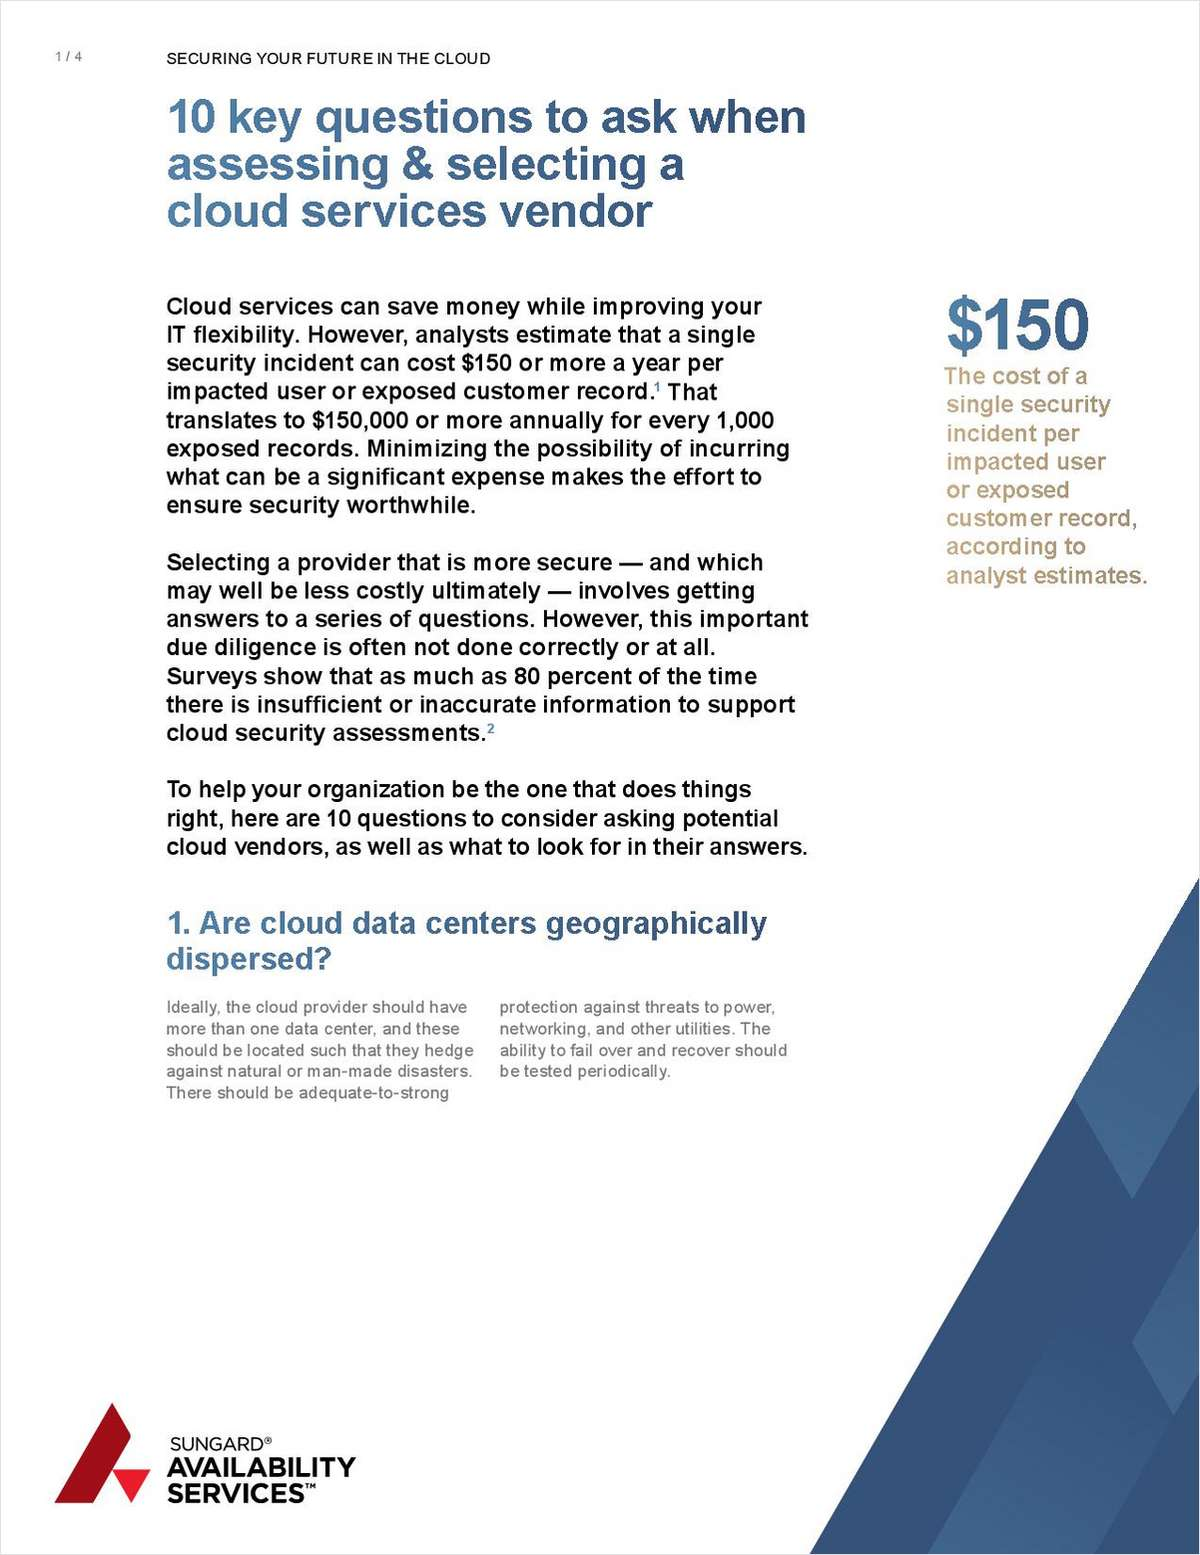 Securing Your Future in the Cloud